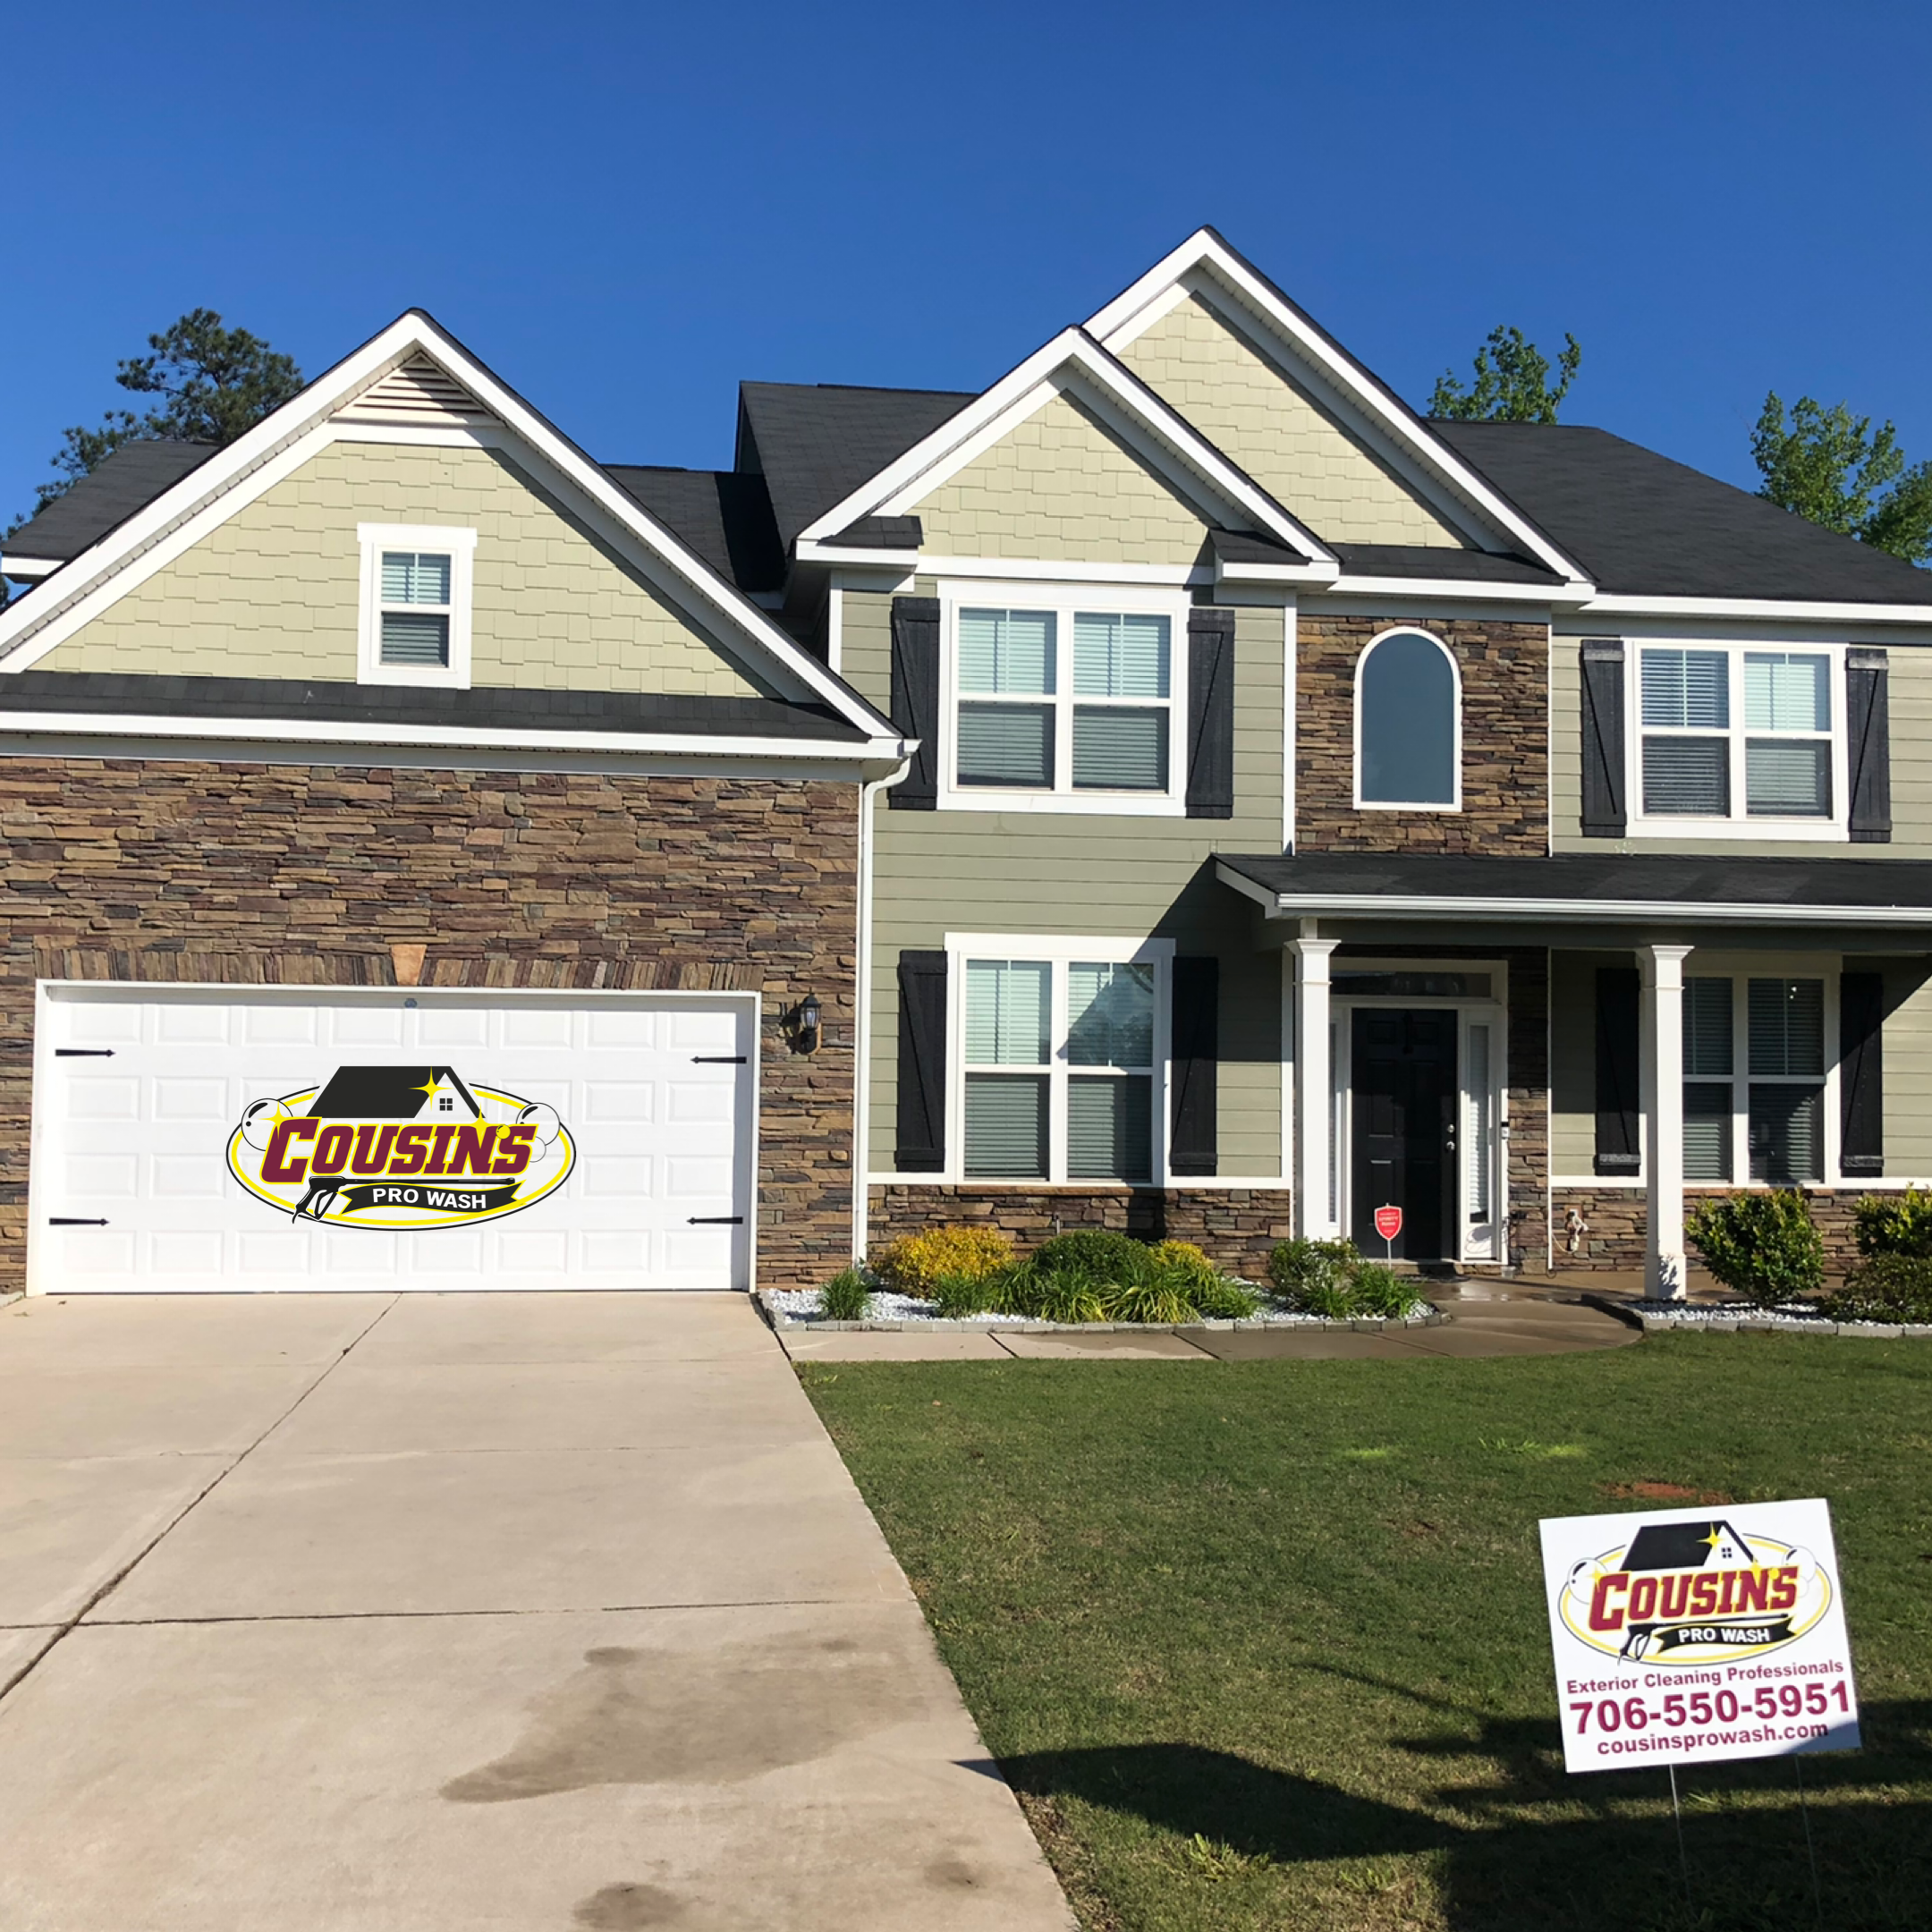 Amazing House Washing In Augusta Ga In 2020 House Wash House Styles House